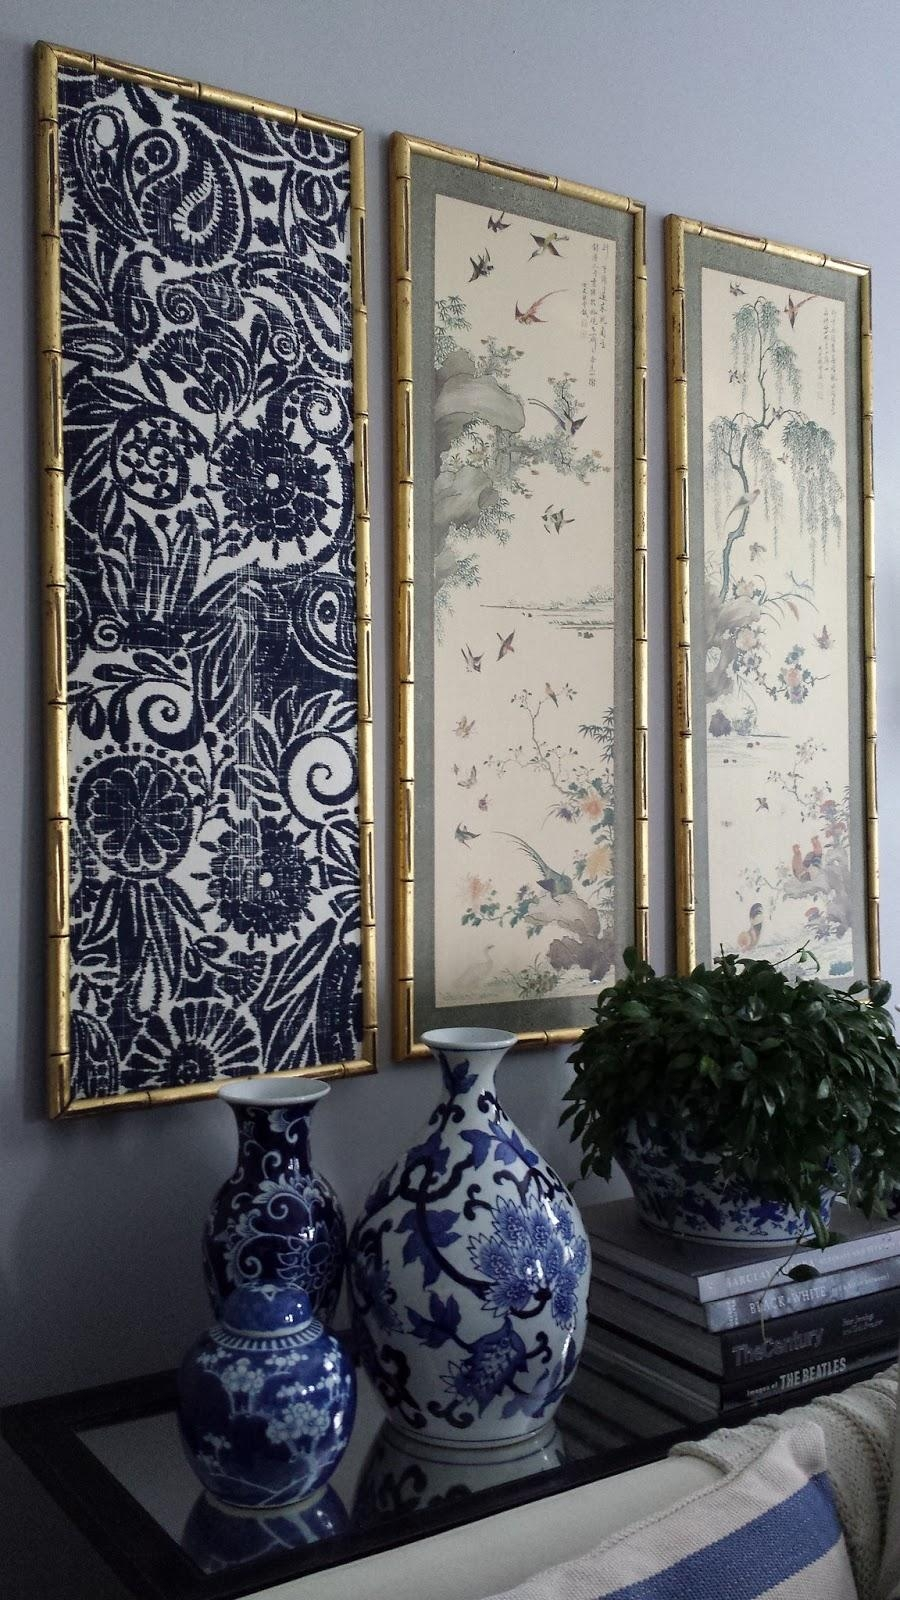 Focal Point Styling: Diy Indigo Wall Art With Framed Fabric In Framed Fabric Wall Art (View 10 of 20)